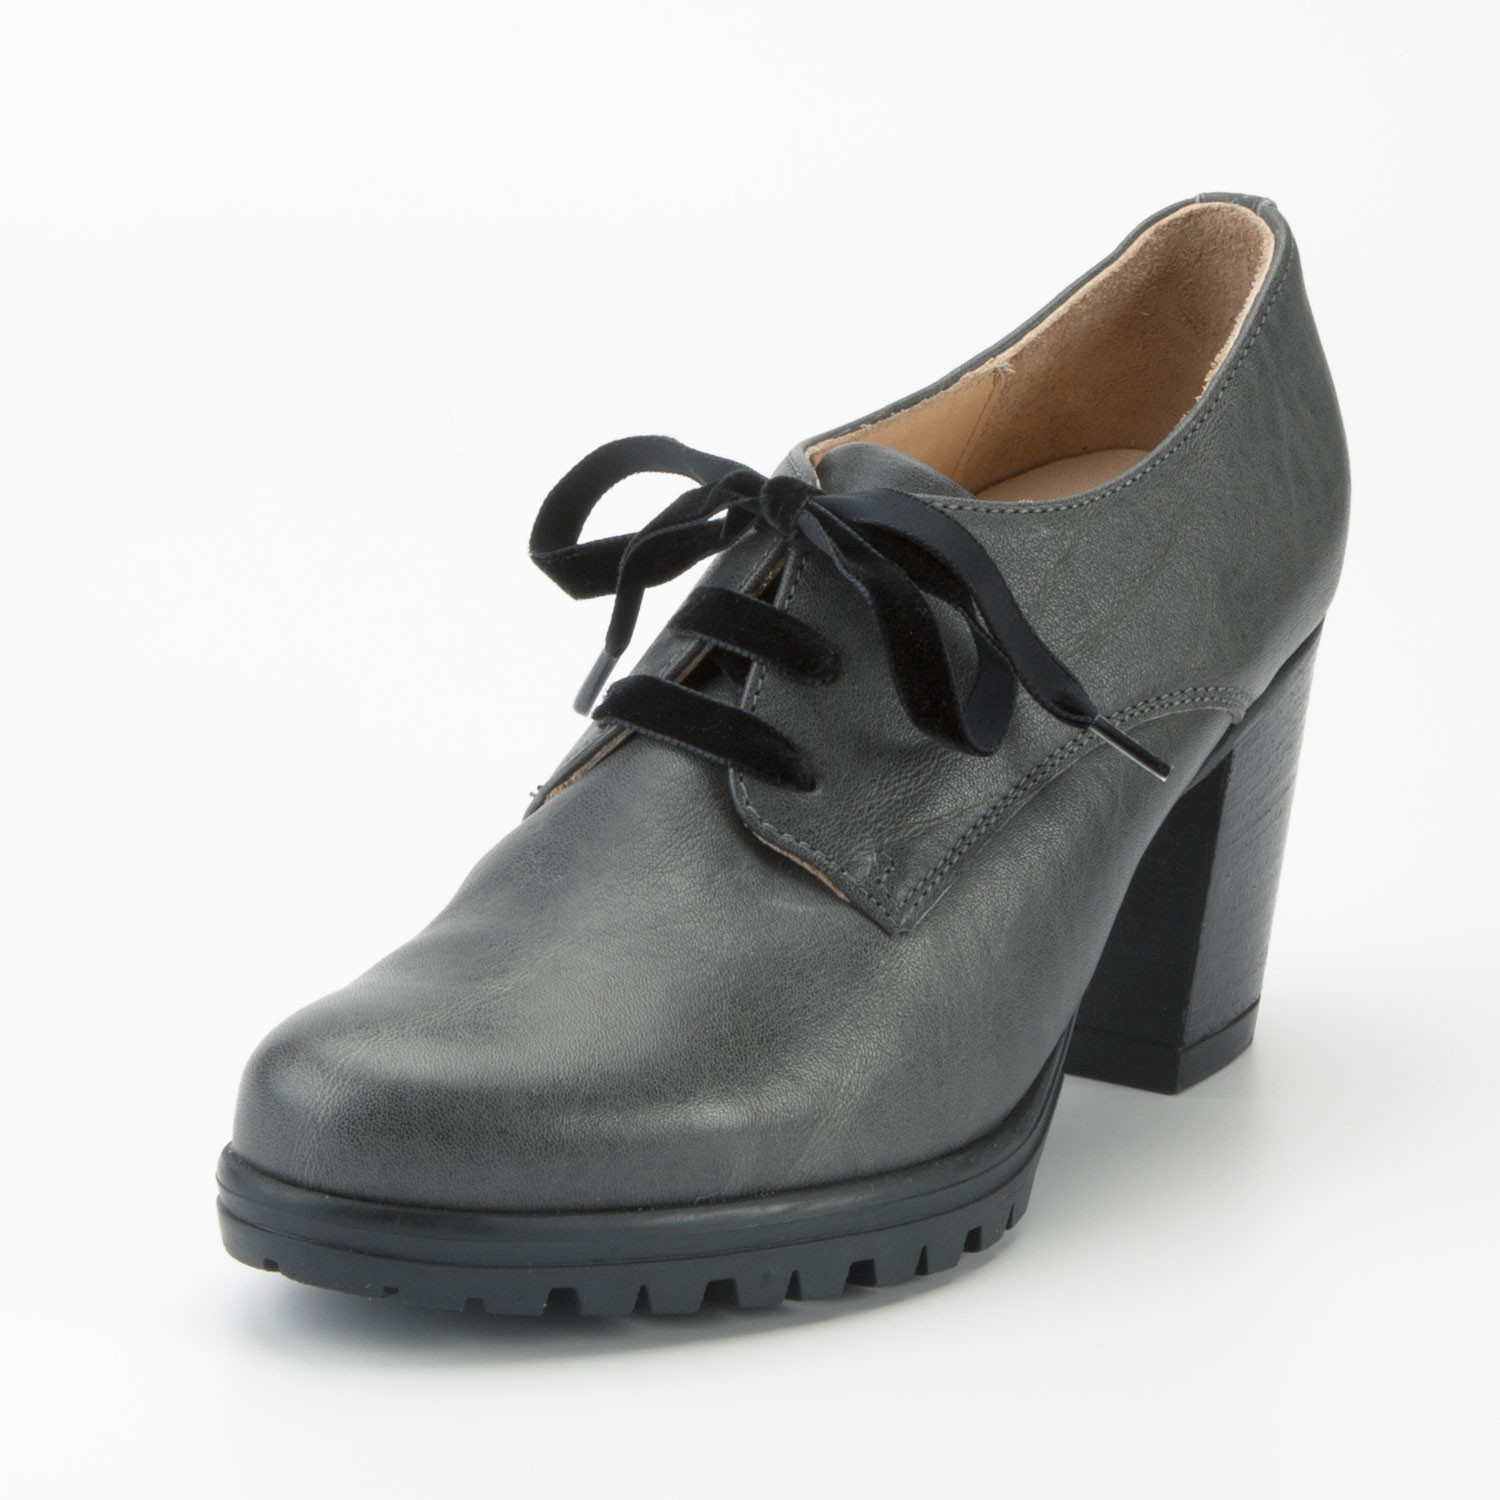 Enna Pumps, antracietgrijs | Waschbär Eco-Shop from Waschbär